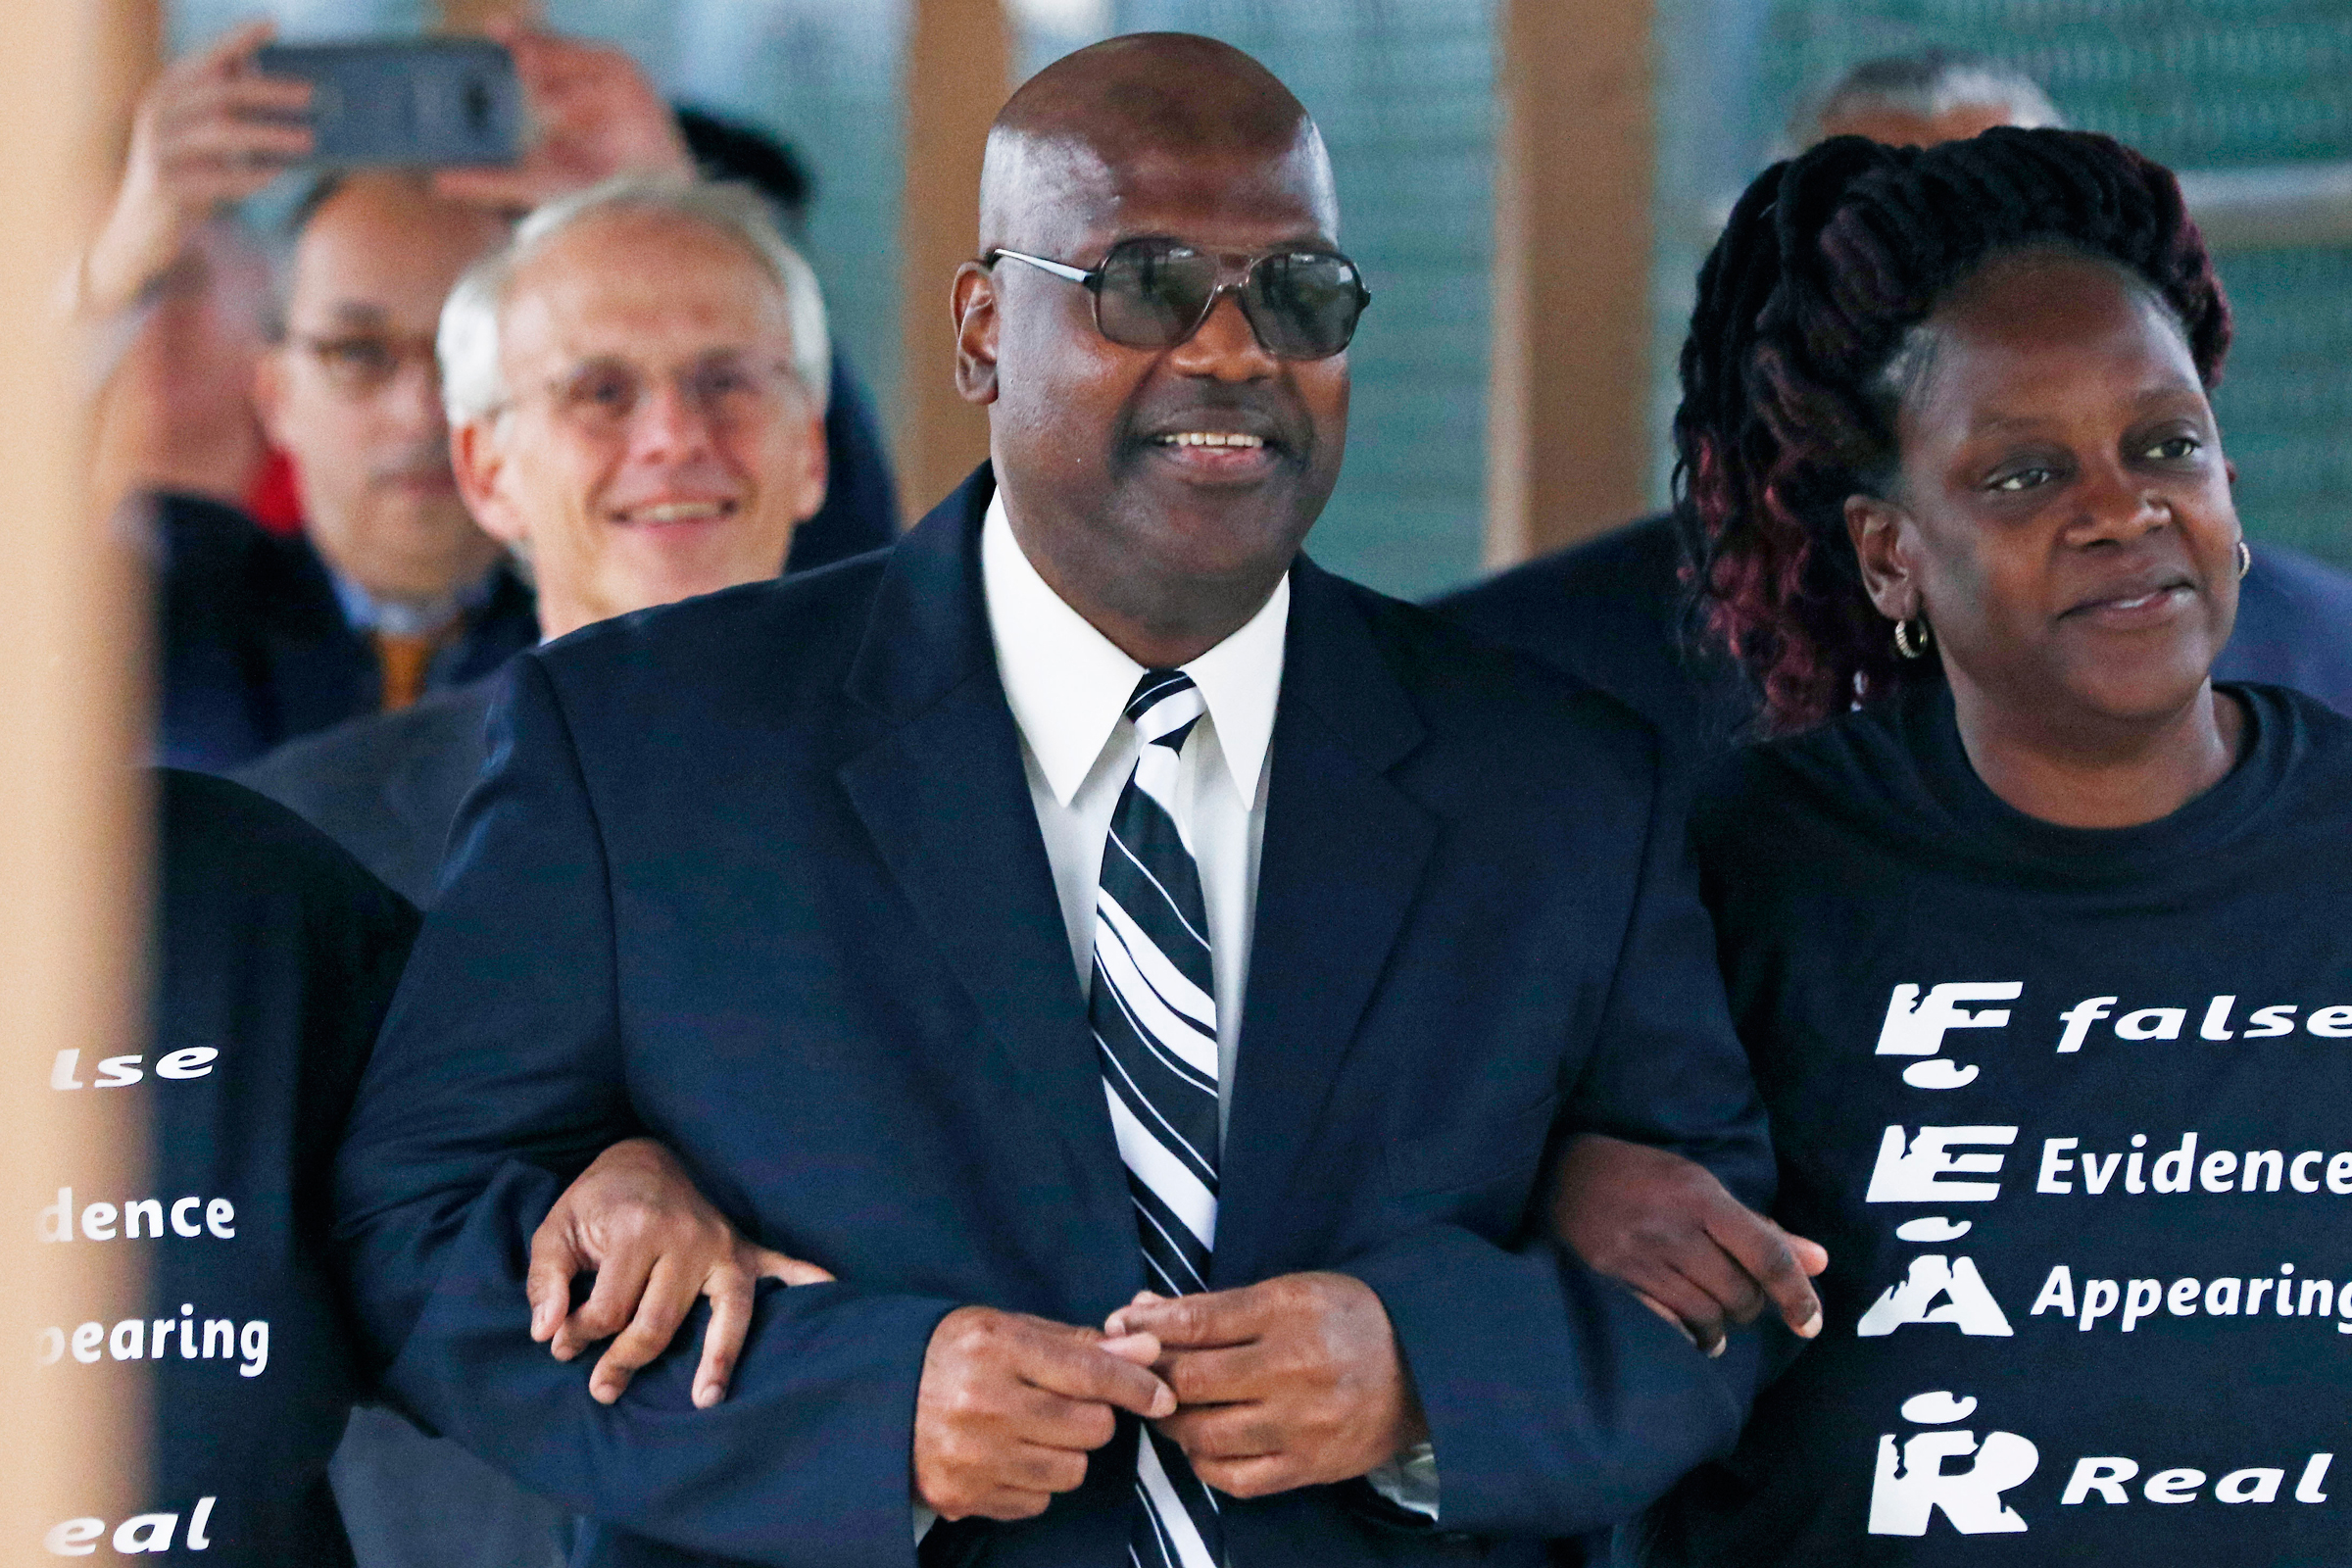 Curtis Flowers Has Been Granted Bail After 23 Years In Prison